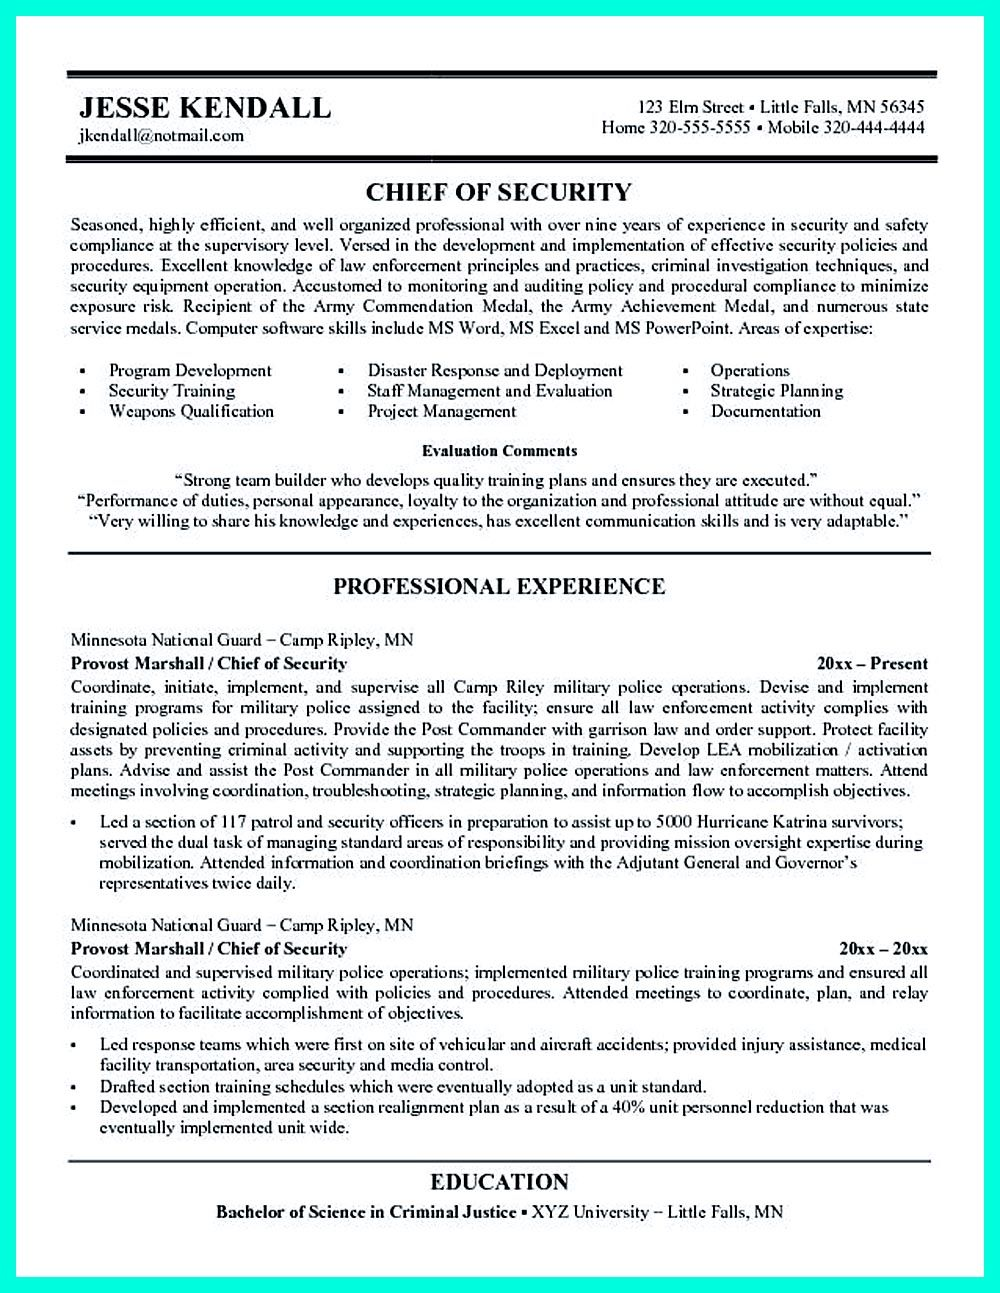 cyber security resume must be well created to get the job position as what you want